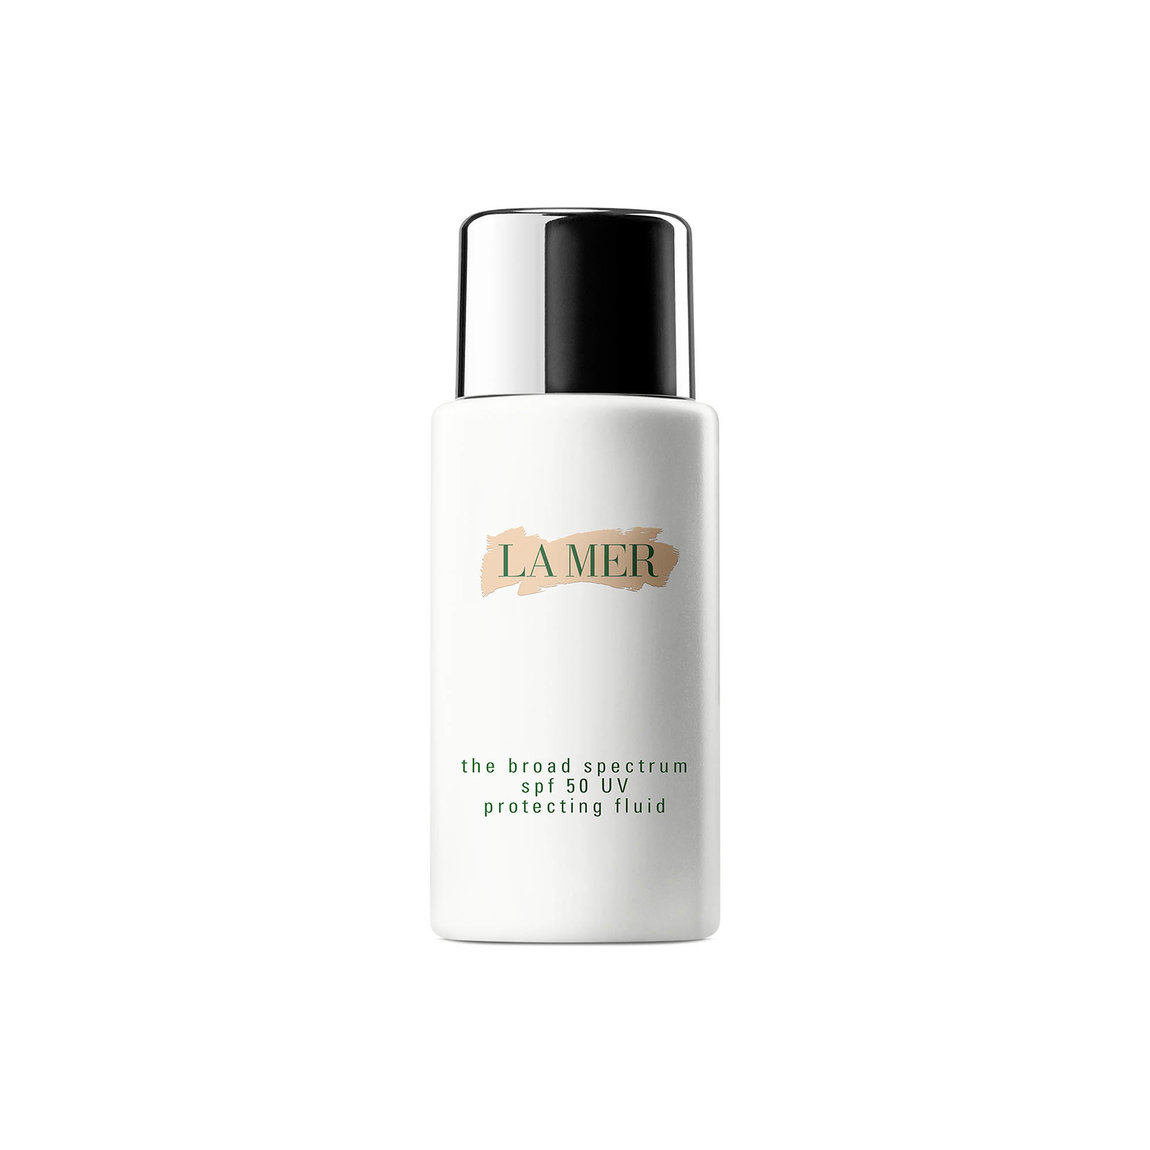 La Mer The SPF 50 UV Protecting Fluid product smear.